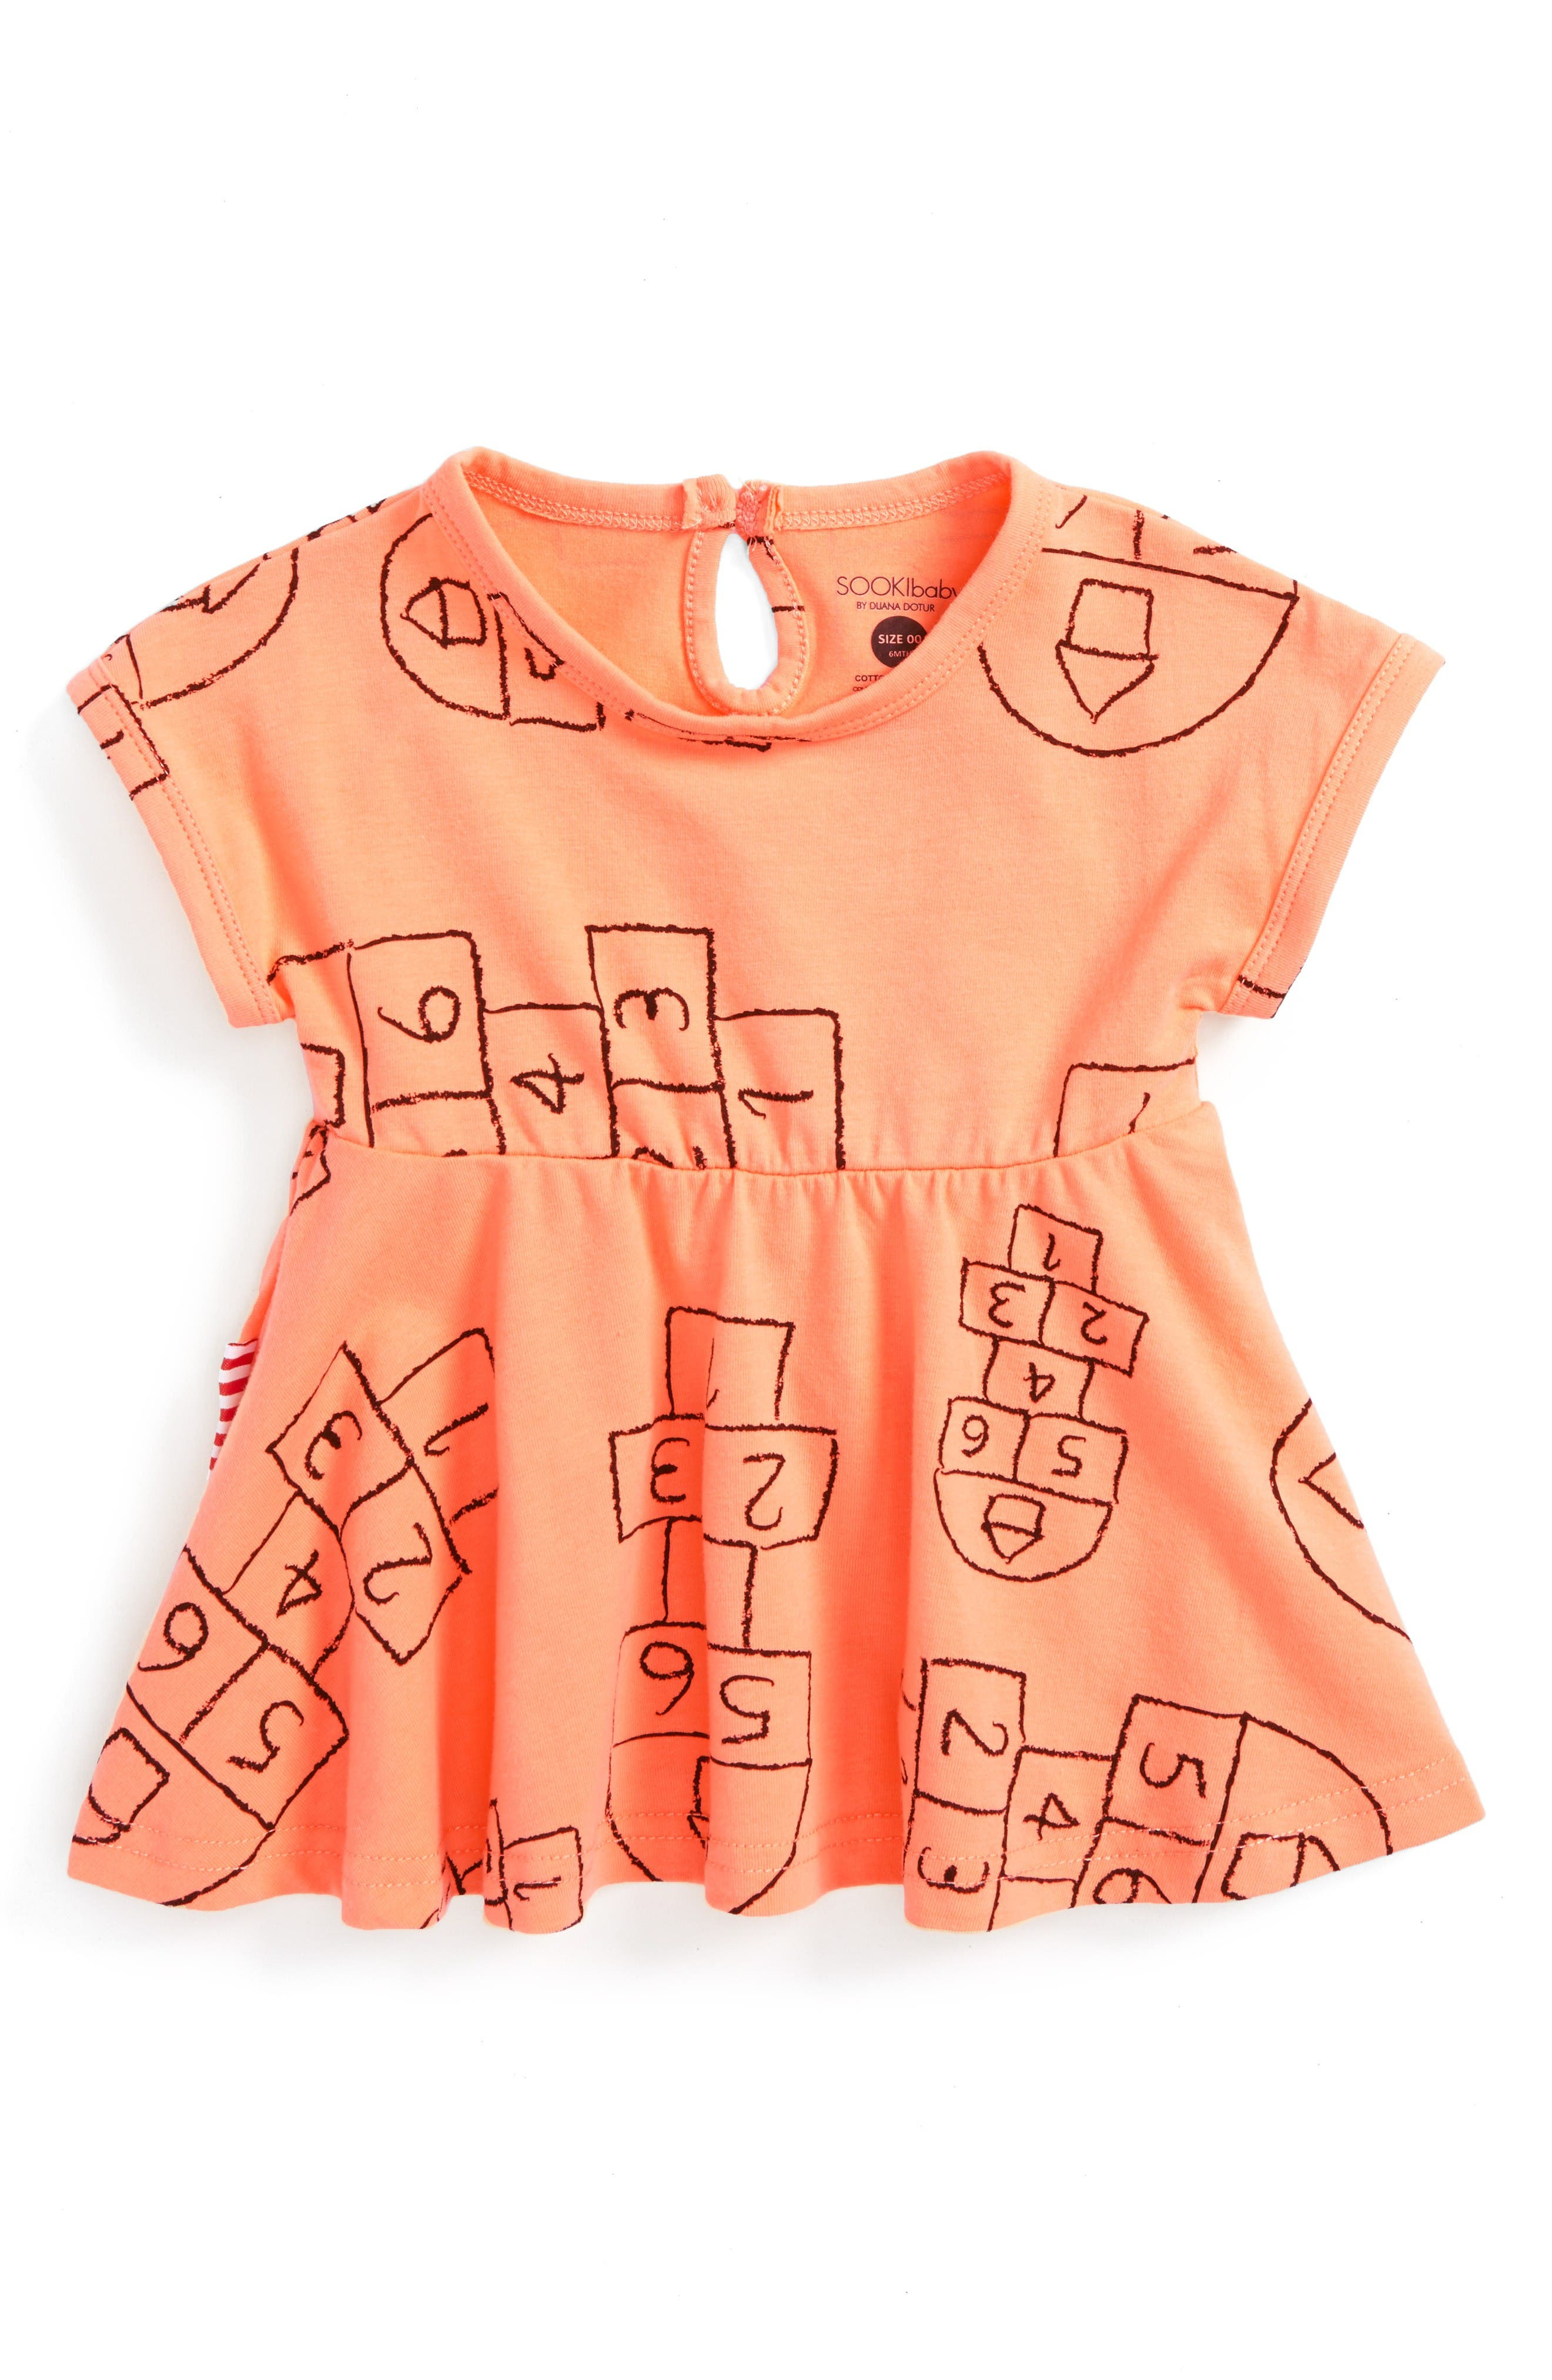 SOOKIbaby Print Knit Dress (Baby & Toddler)